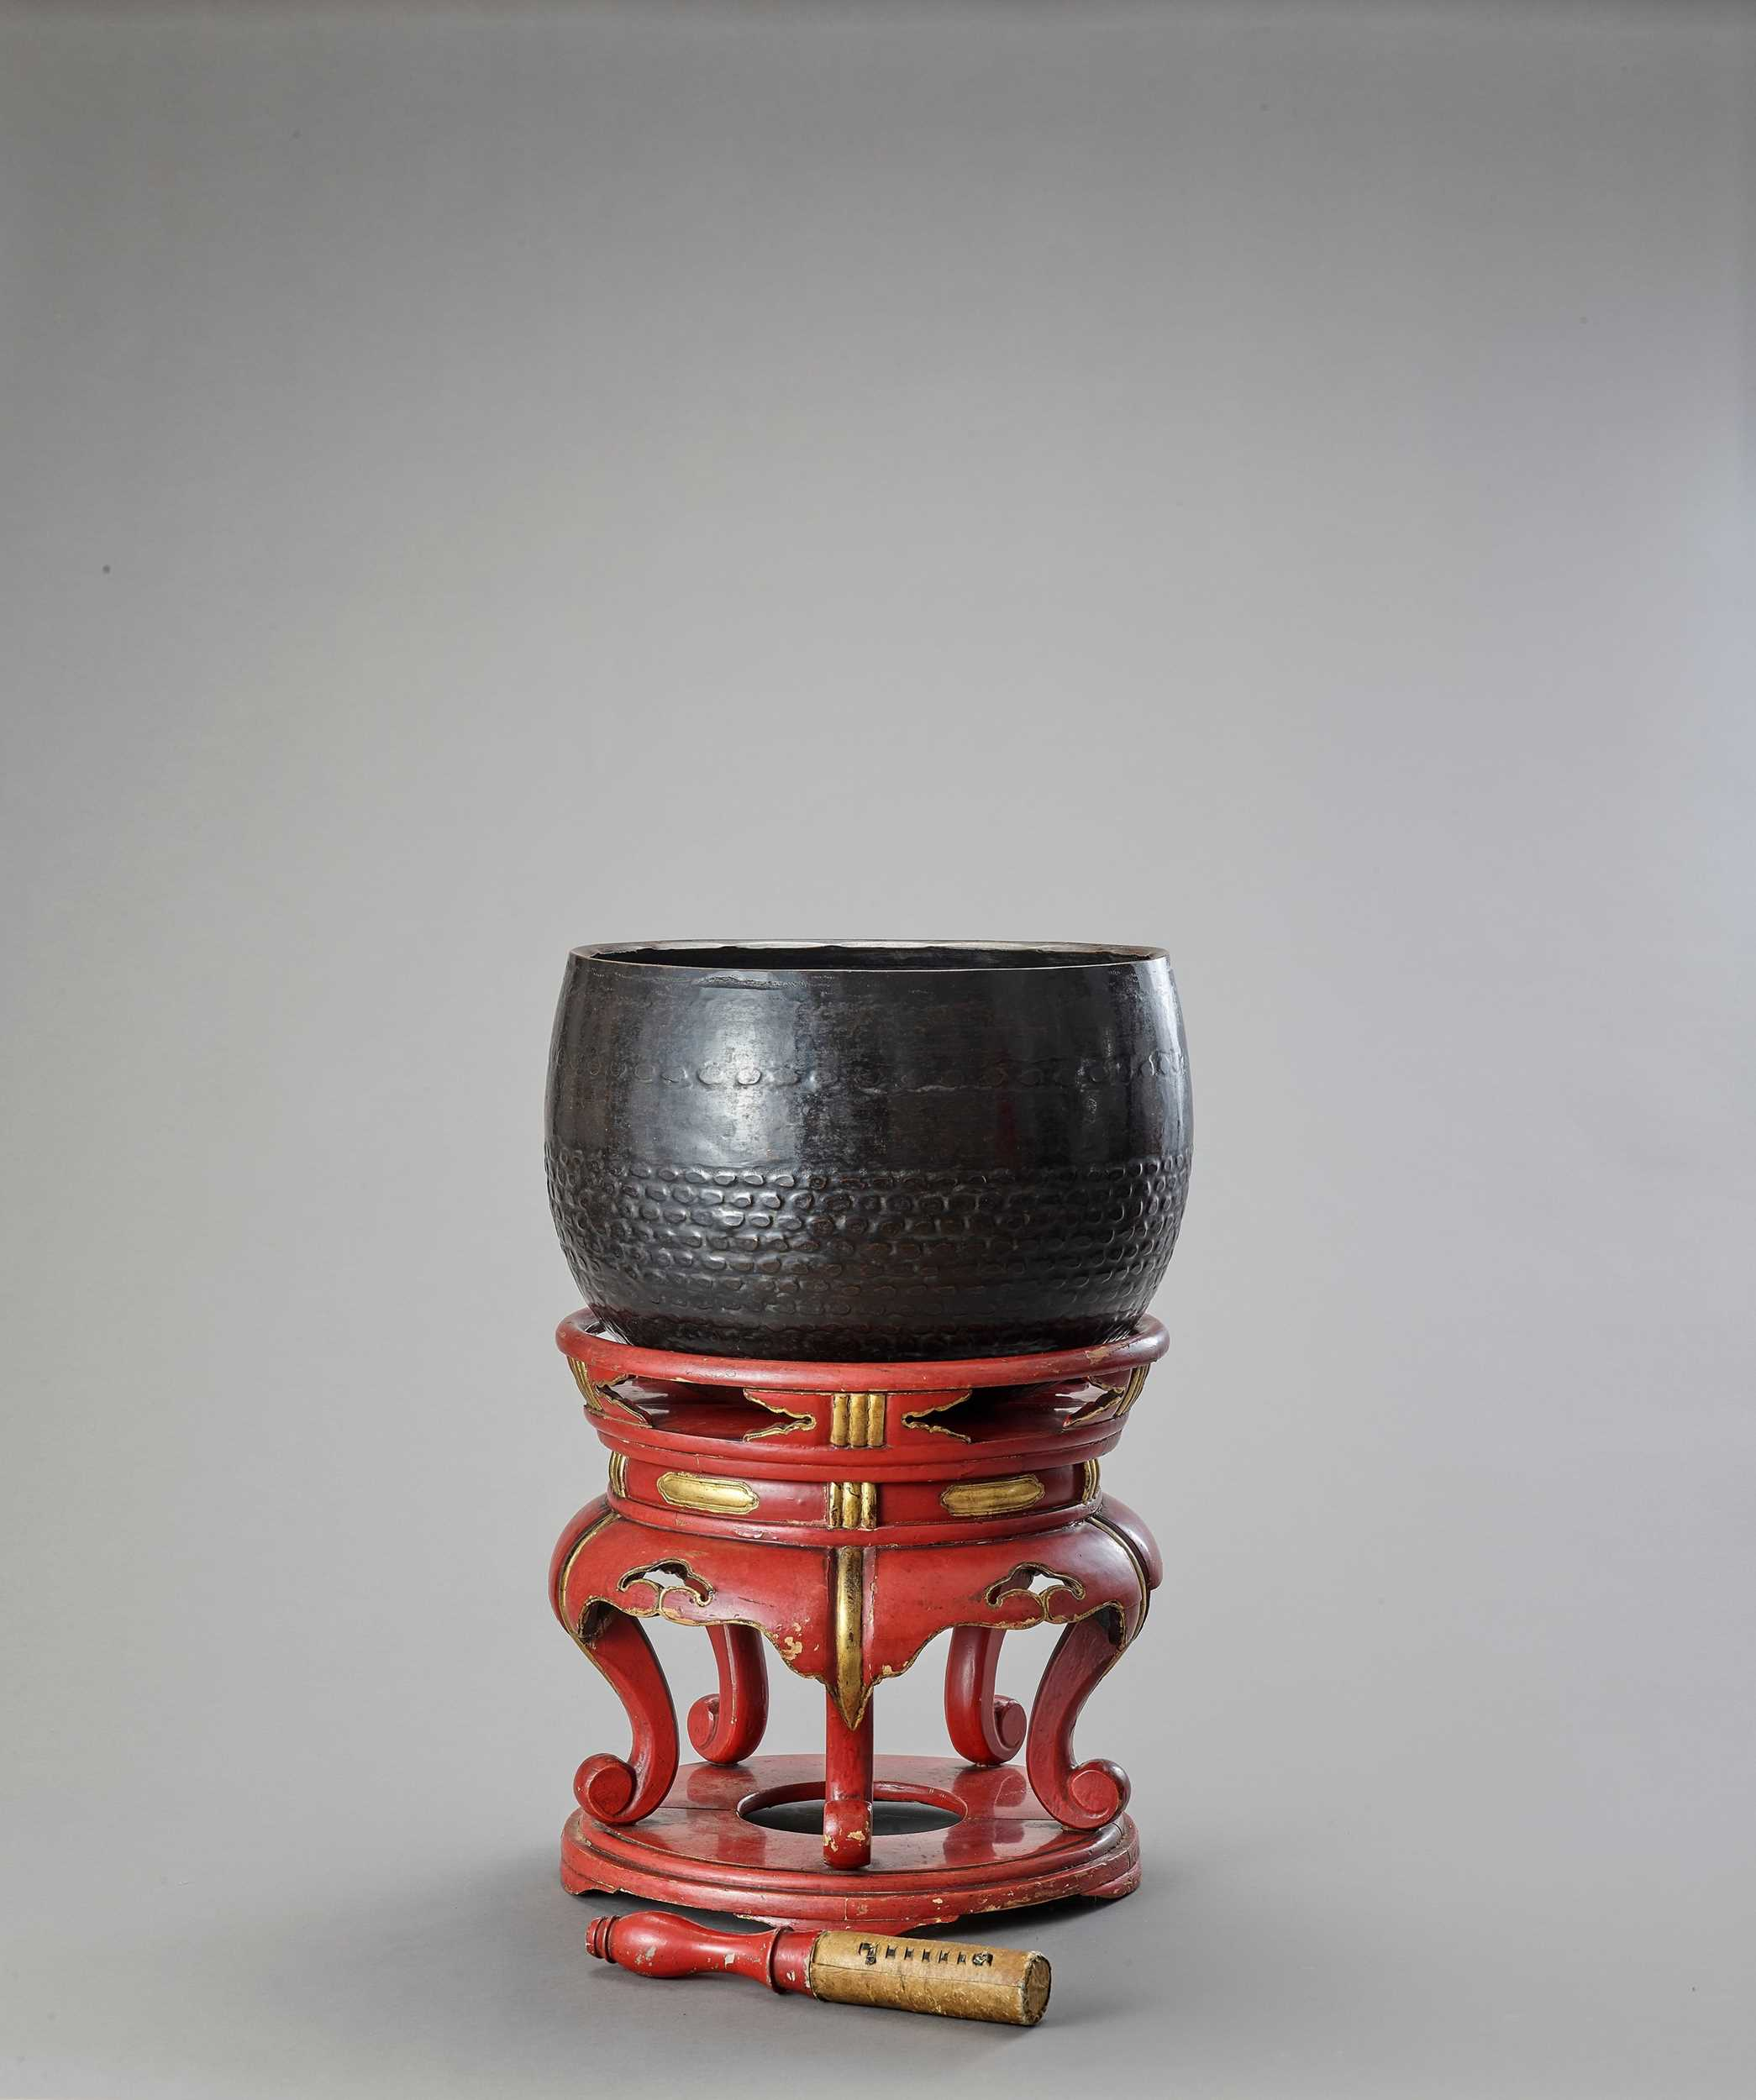 Lot 9 - A BUDDHIST BRONZE GONG ON A LACQUERED WOOD STAND